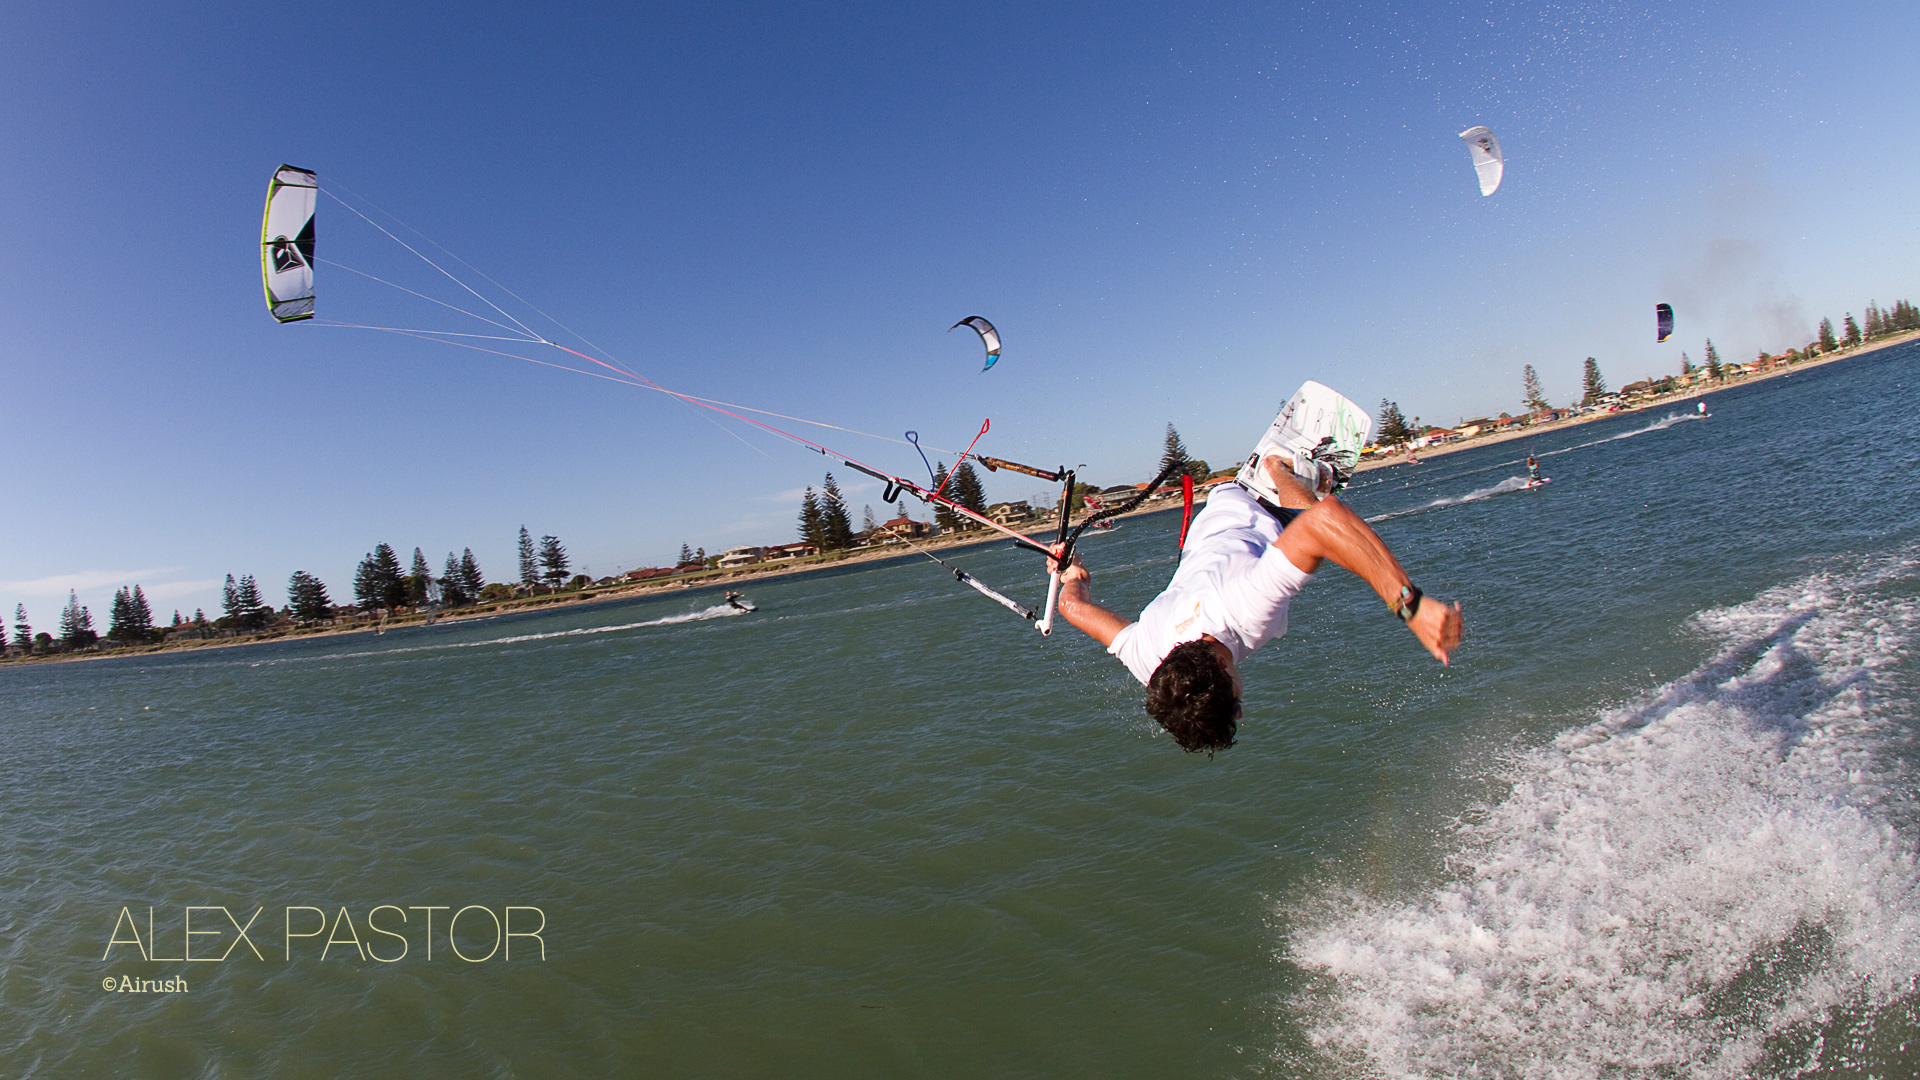 kitesurf wallpaper image - Alex Pastor with a low handlepass - in resolution: High Definition - HD 16:9 1920 X 1080